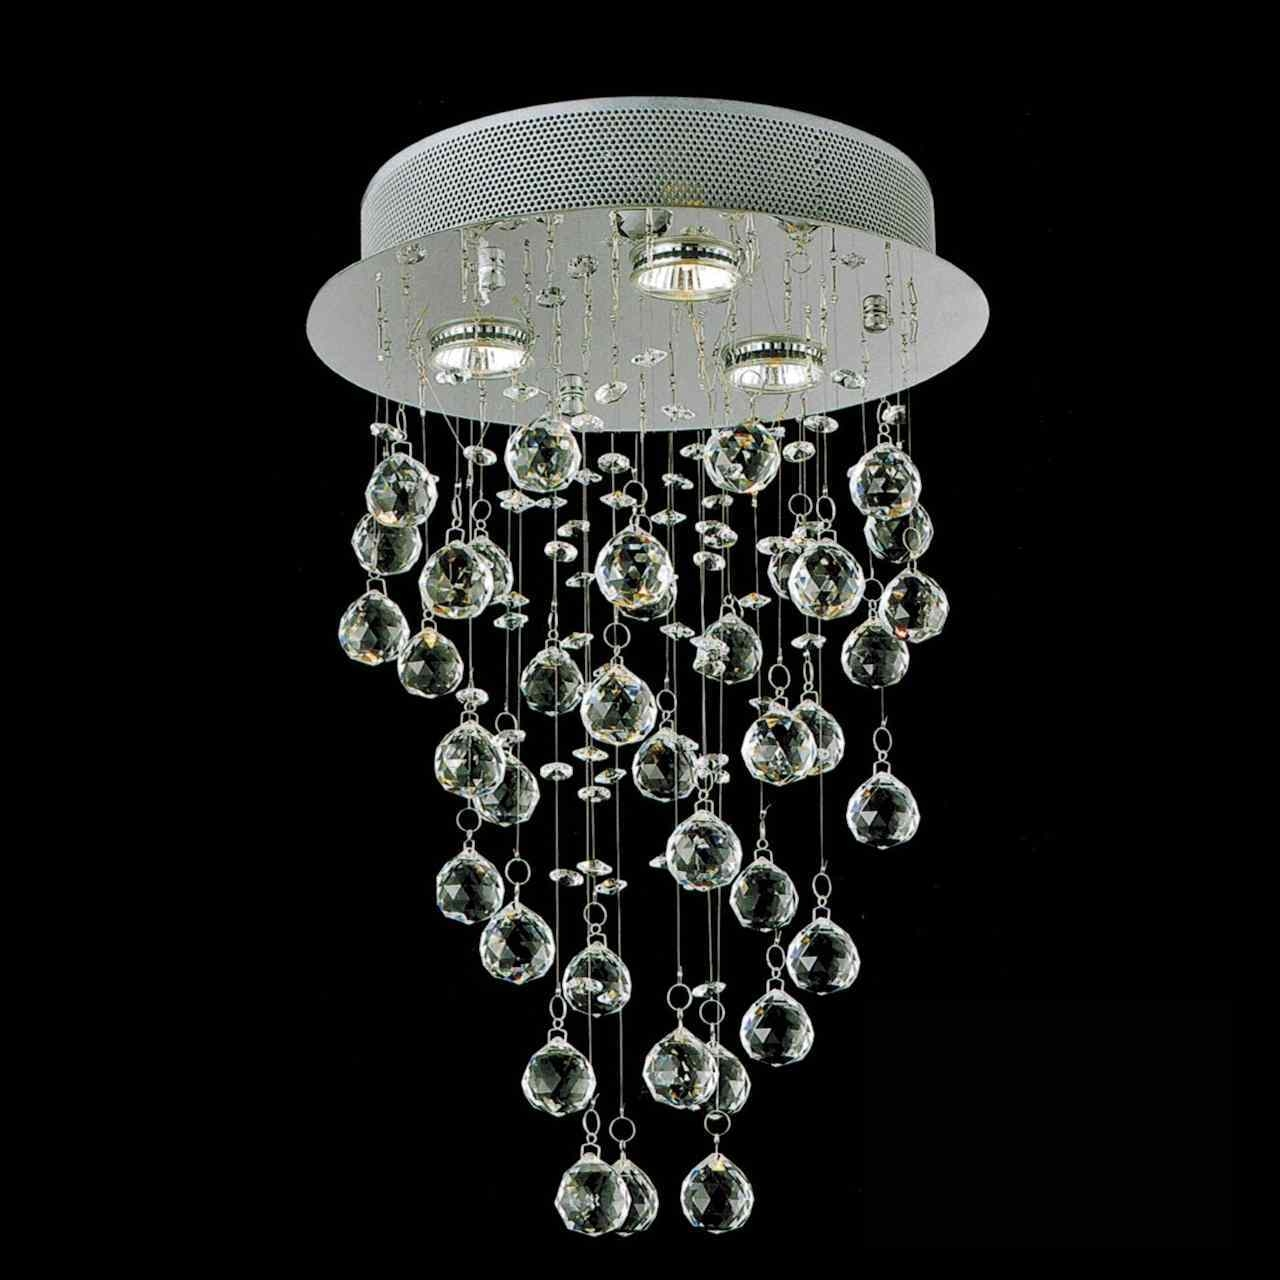 Brizzo Lighting Stores 18 Raindrops Modern Foyer Crystal Round In Mirror Chandelier (View 5 of 12)